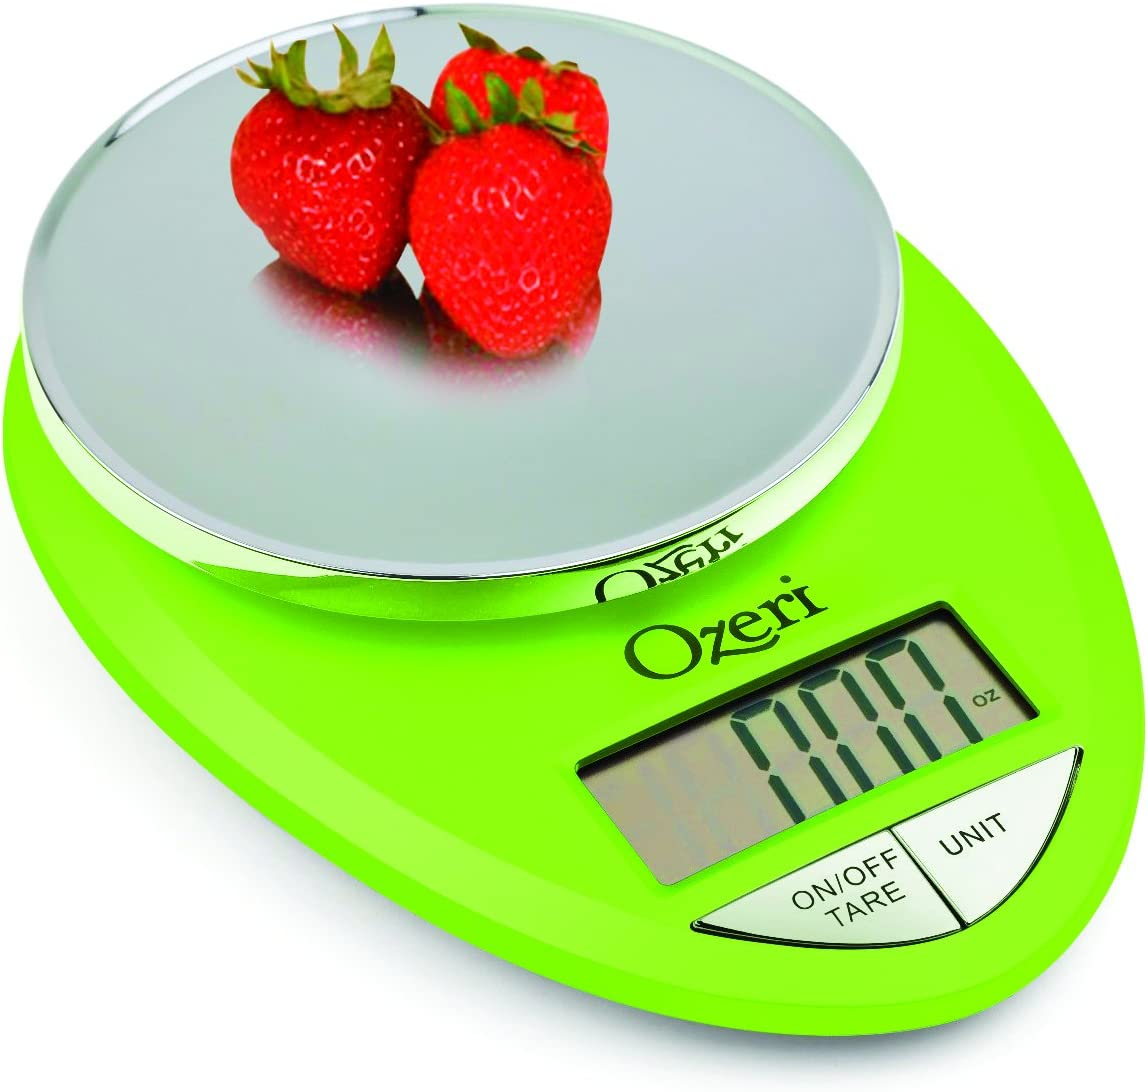 Ozeri ZK12-L Pro Digital Kitchen Food Scale, 1g/12 lb, Lime Green